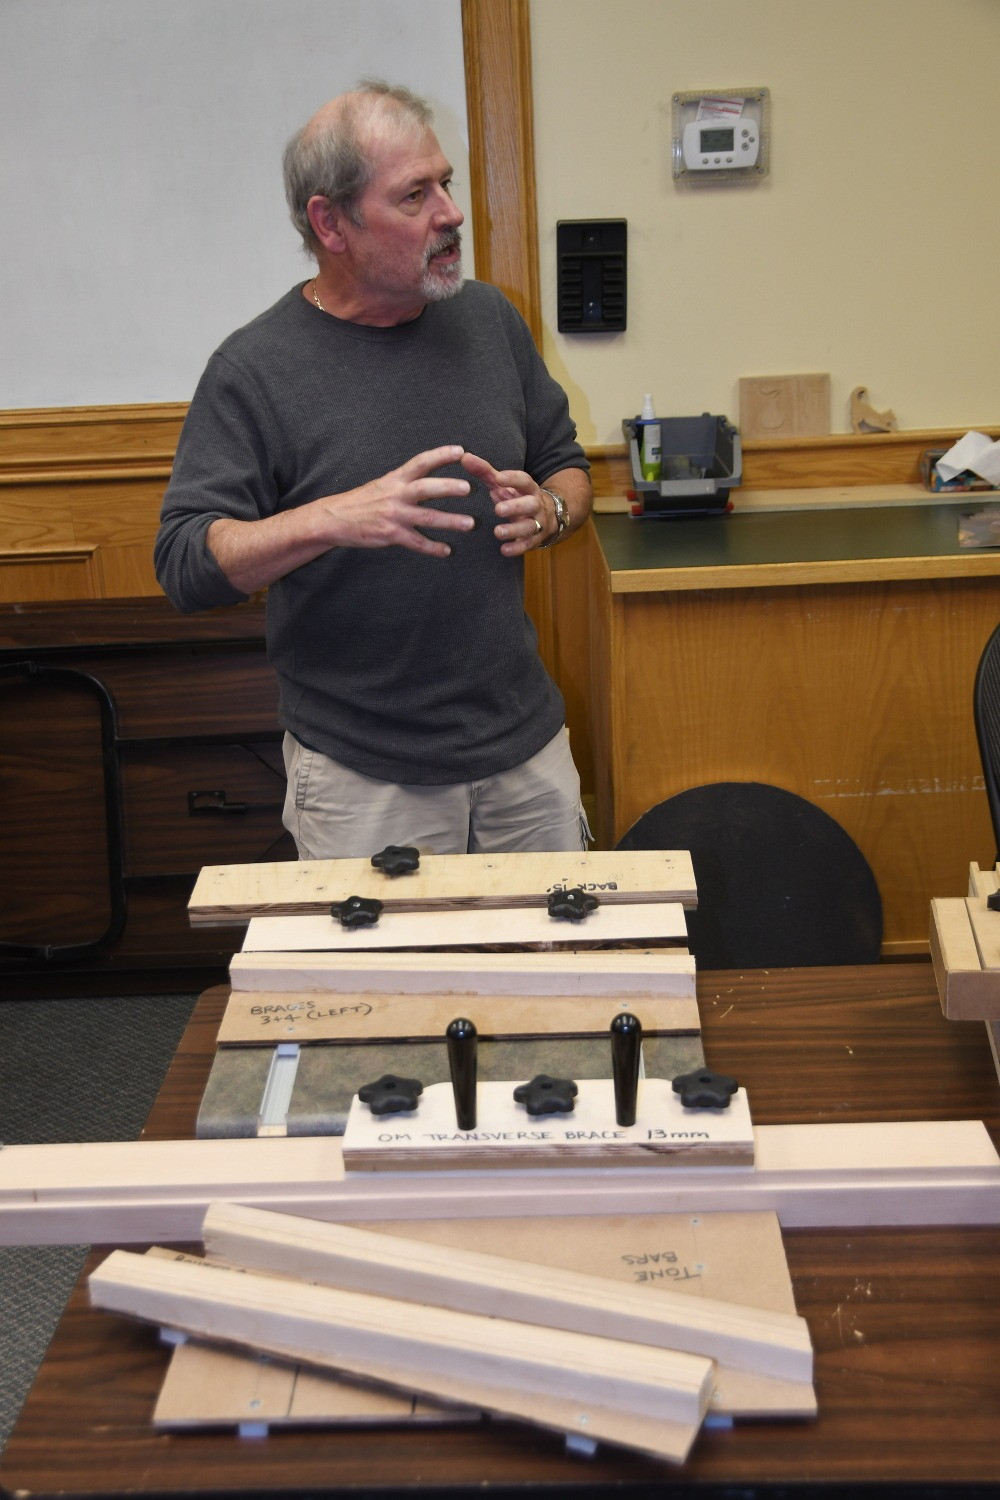 Shop-made Jigs Demonstrated at a Guild Meeting